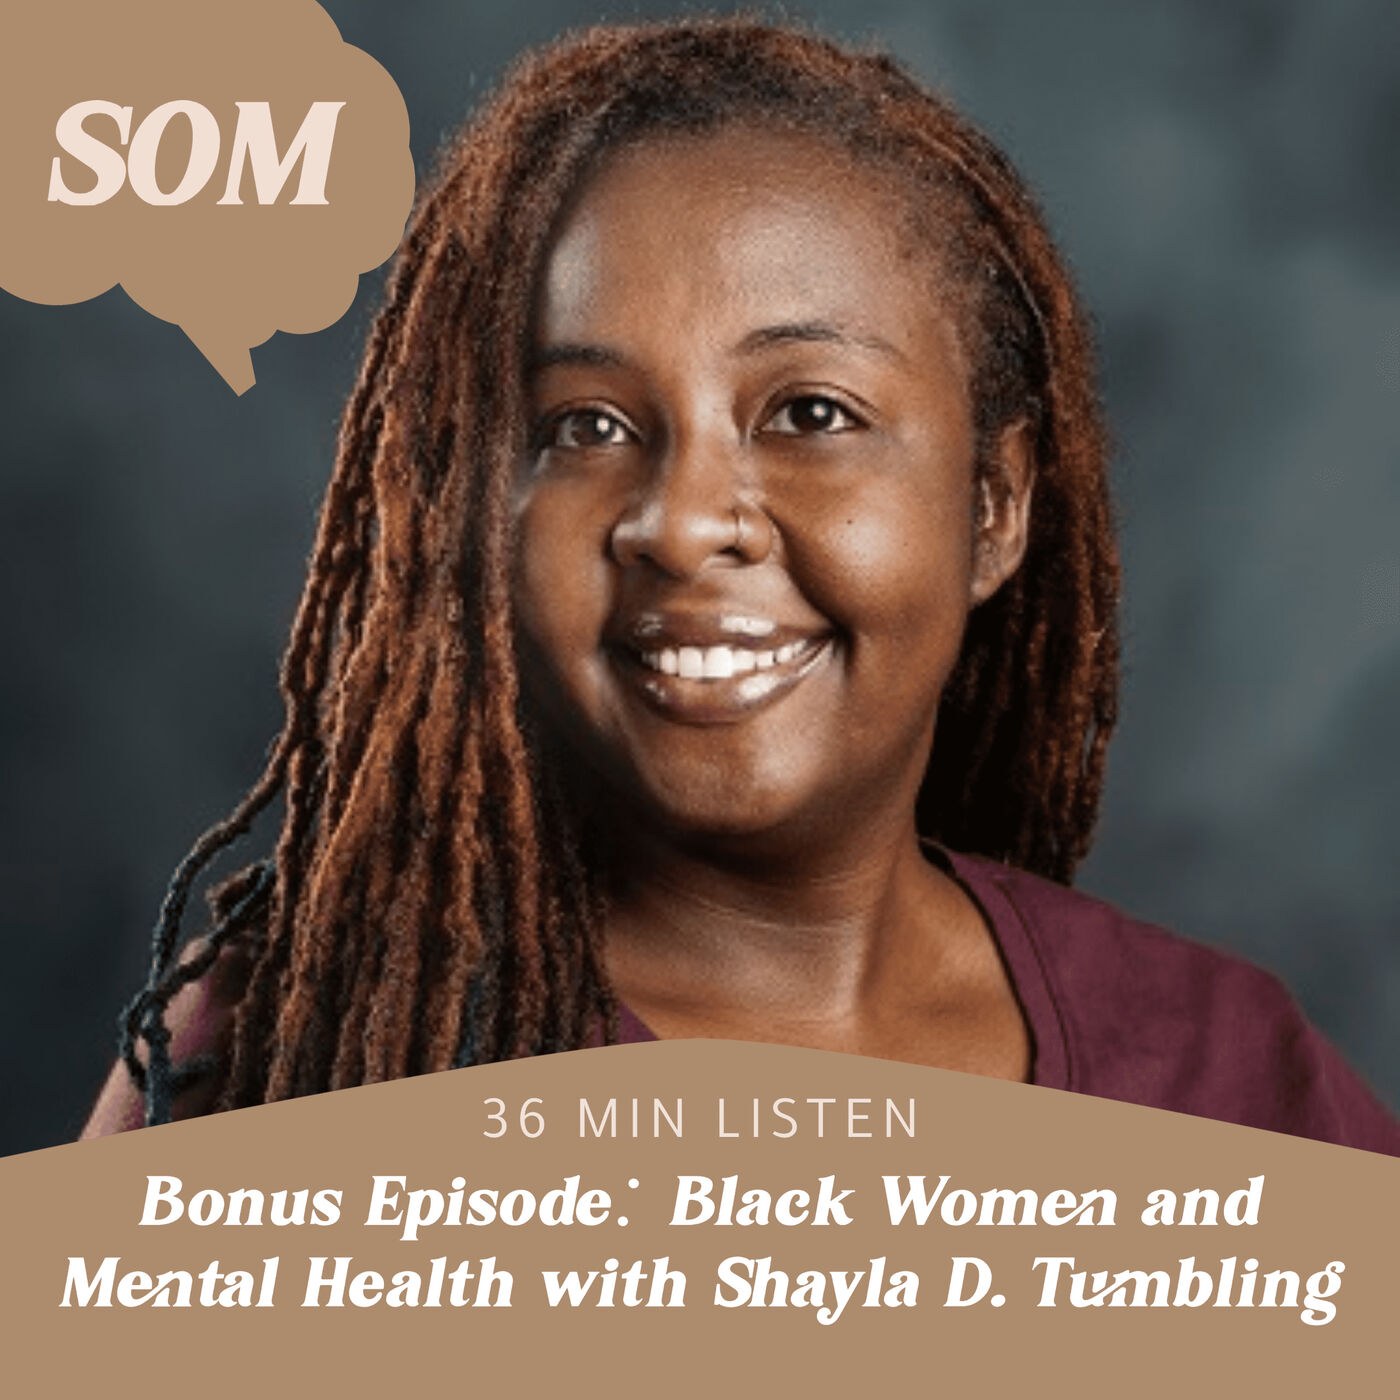 Bonus Episode: Black Women and Mental Health with Shayla D. Tumbling